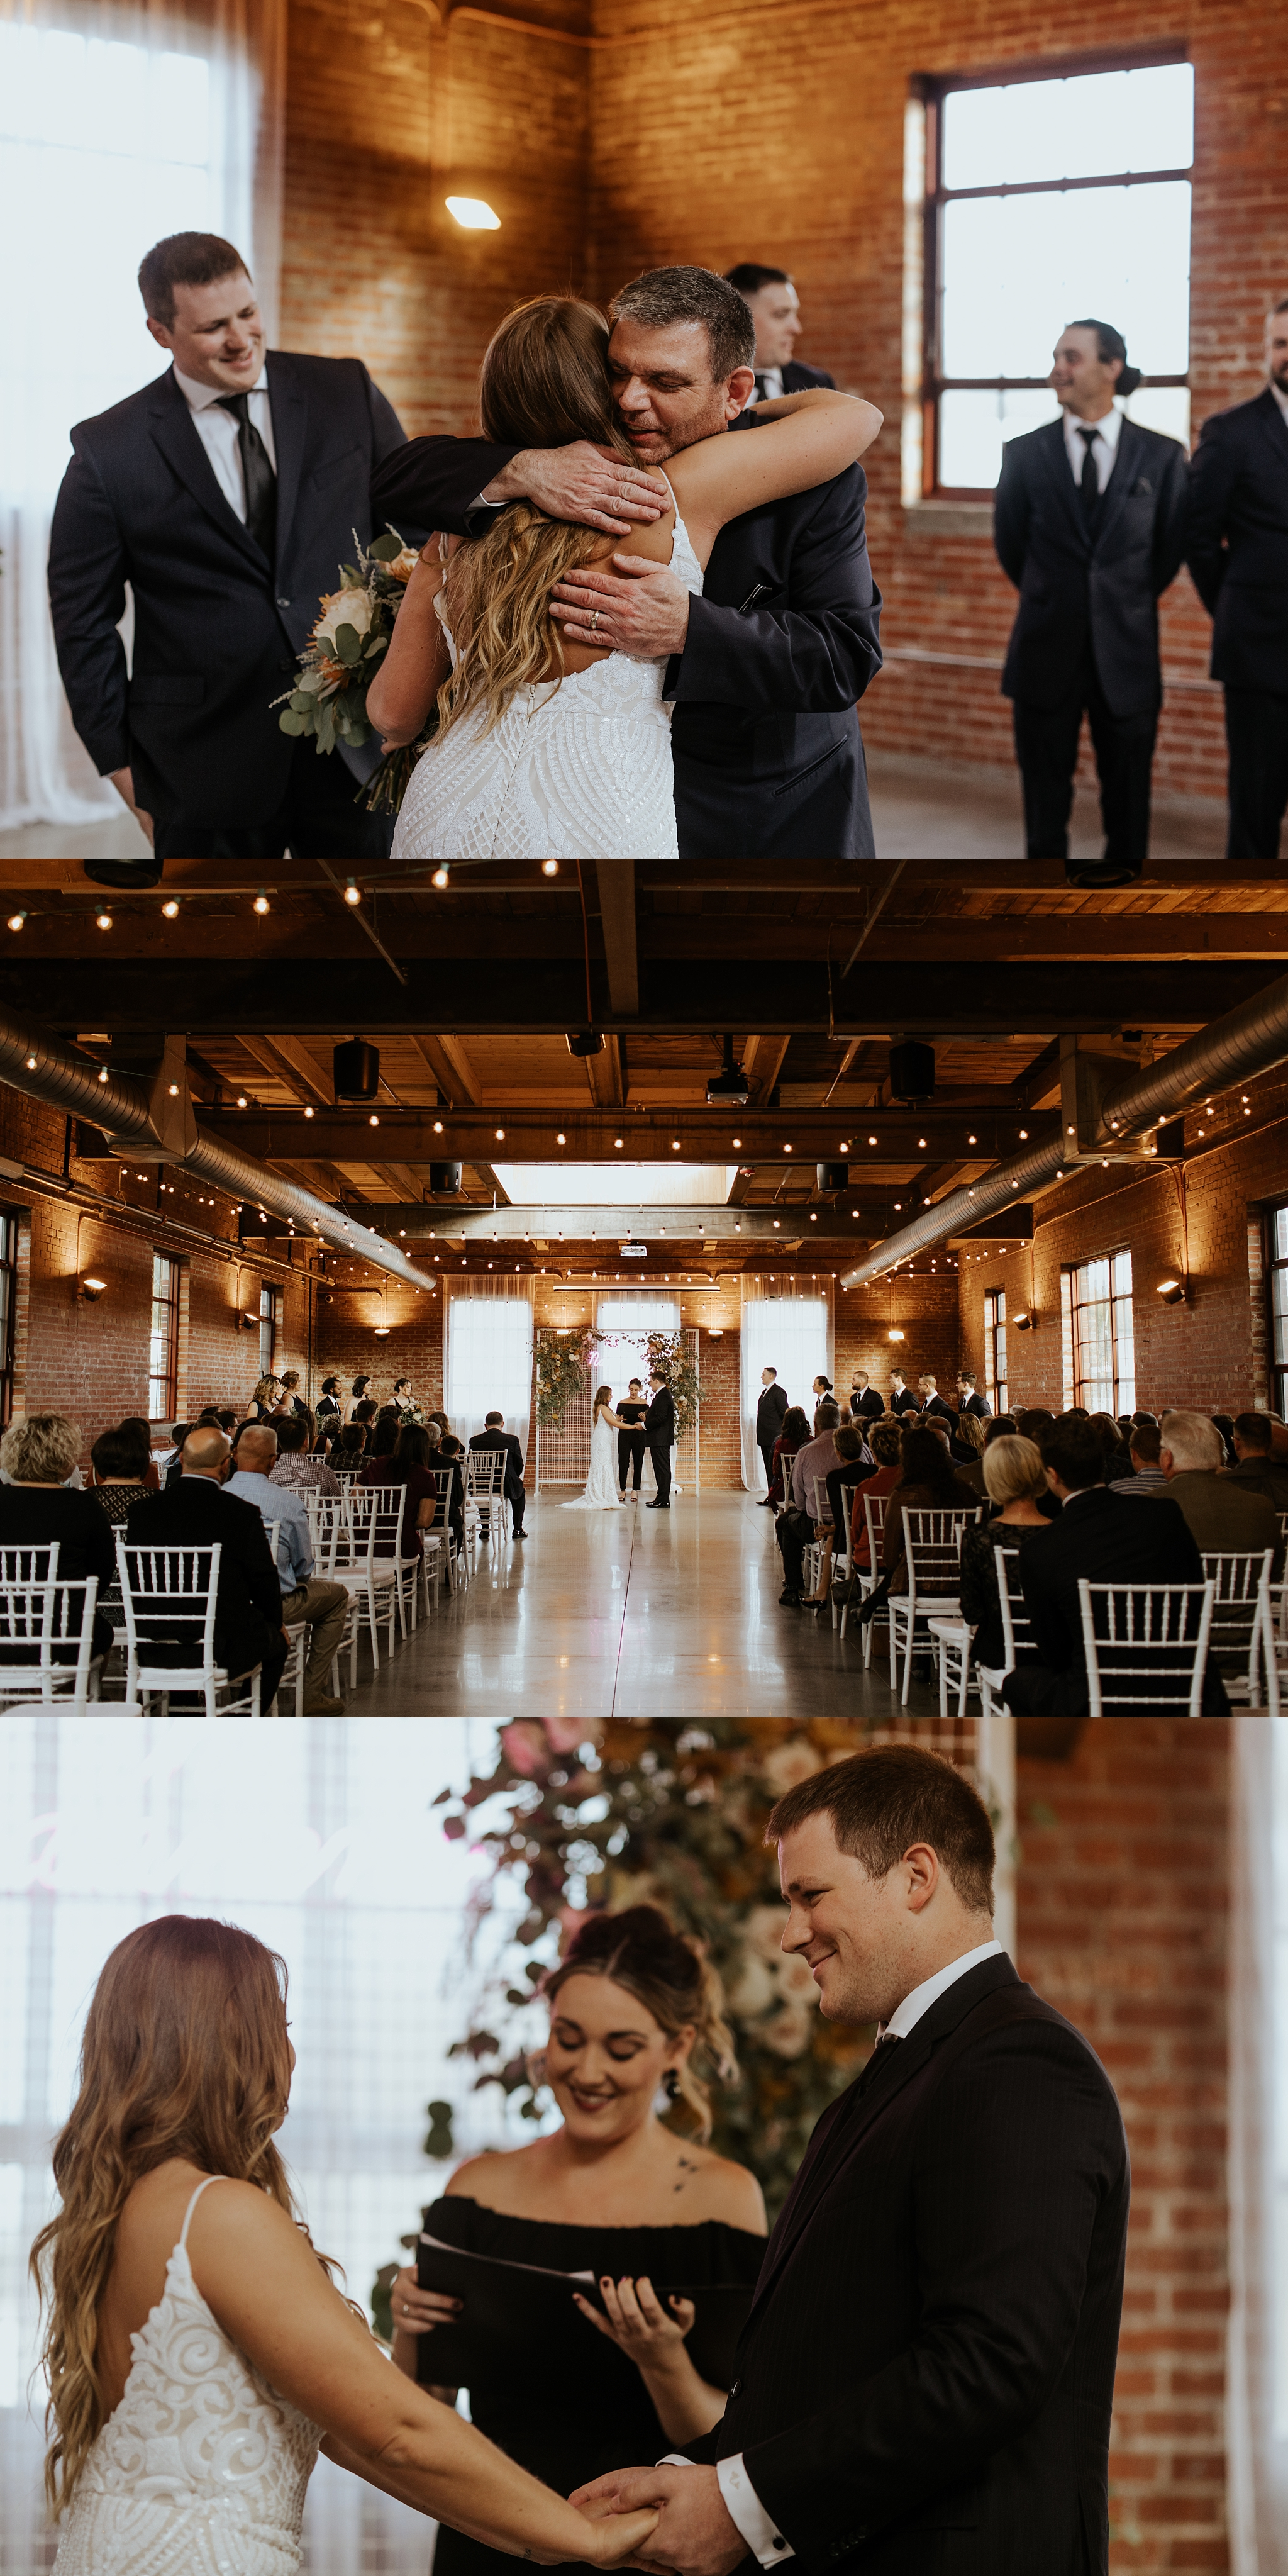 The Omar Arts and Events Center Wedding in Midtown Omaha Nebraska  - Trin Jensen Photography_0027.jpg